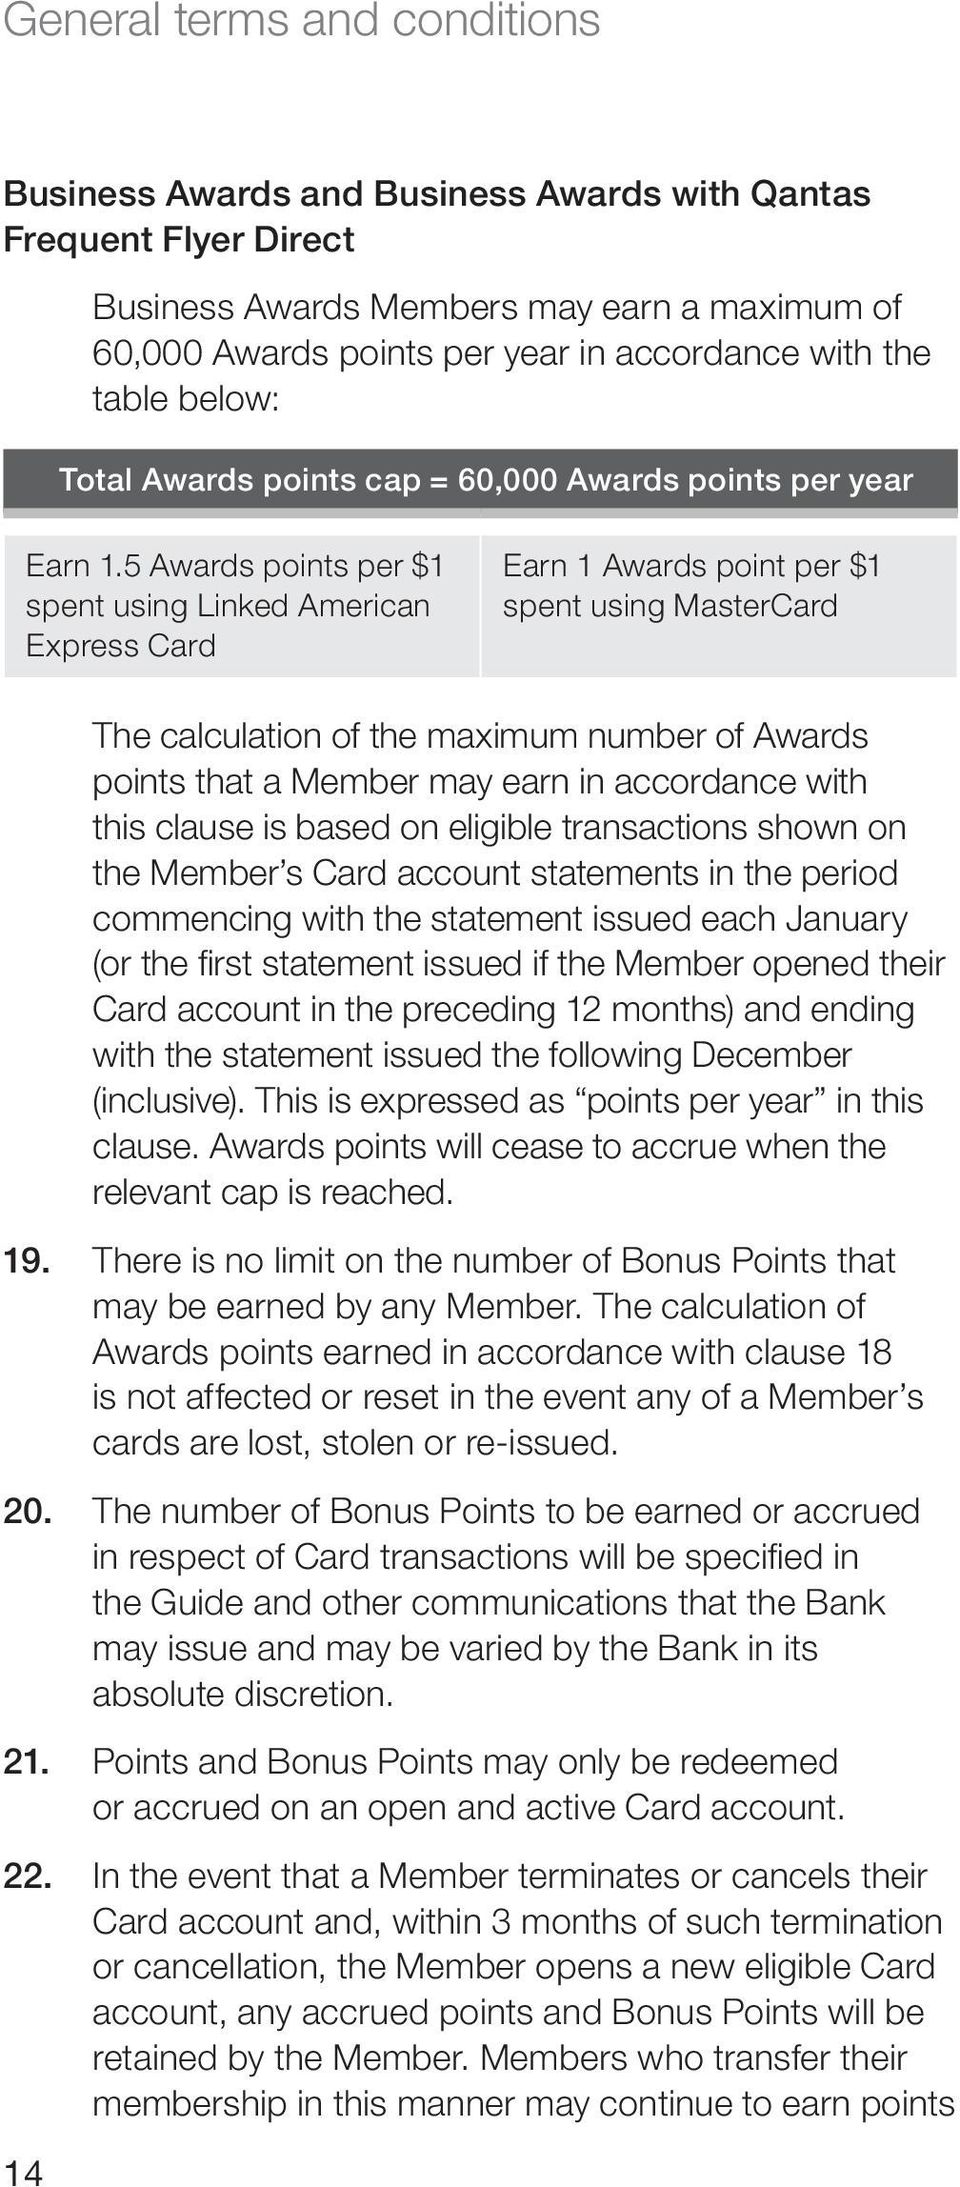 5 Awards points per $1 spent using Linked American Express Card Earn 1 Awards point per $1 spent using MasterCard 14 The calculation of the maximum number of Awards points that a Member may earn in